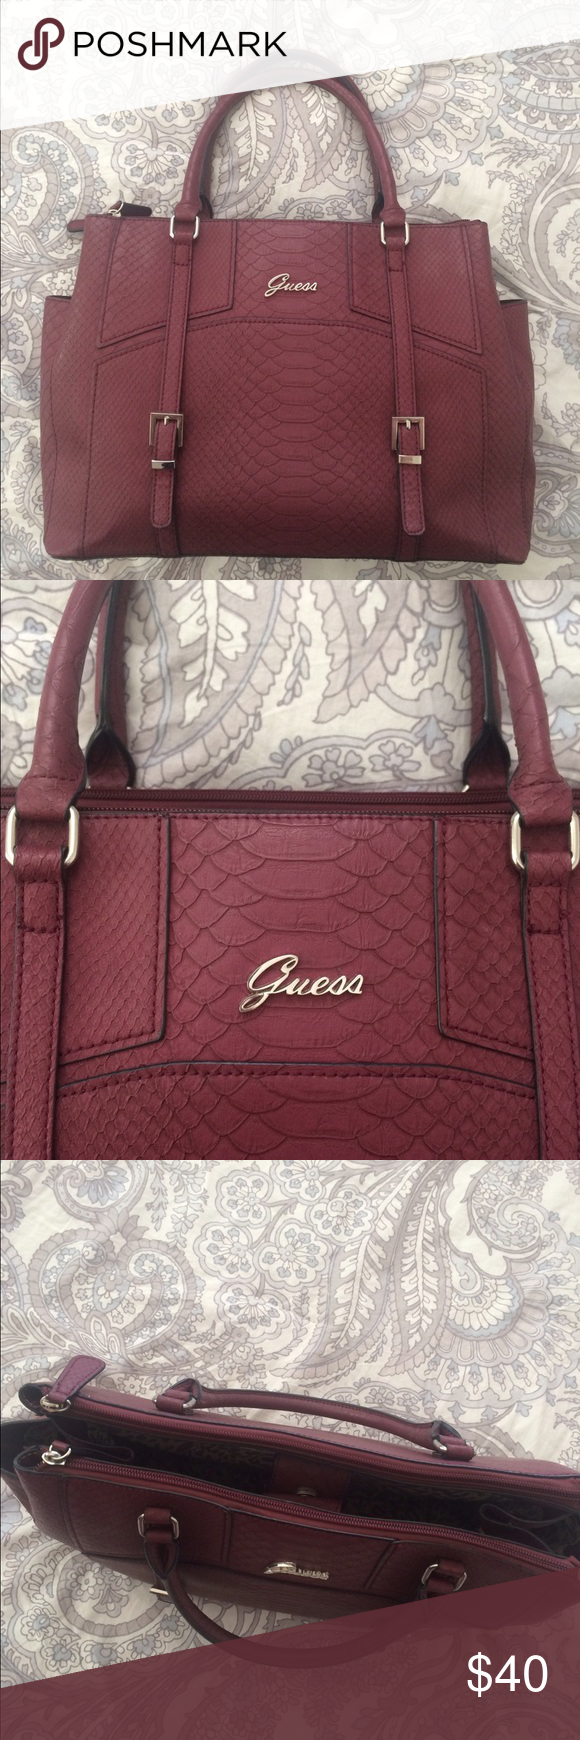 805cb4b159 Burgundy Guess purse Guess handbag. Burgundy plum color. Snakeskin texture.  Inside is leopard print. No flaws. Only used once! Guess Bags Totes